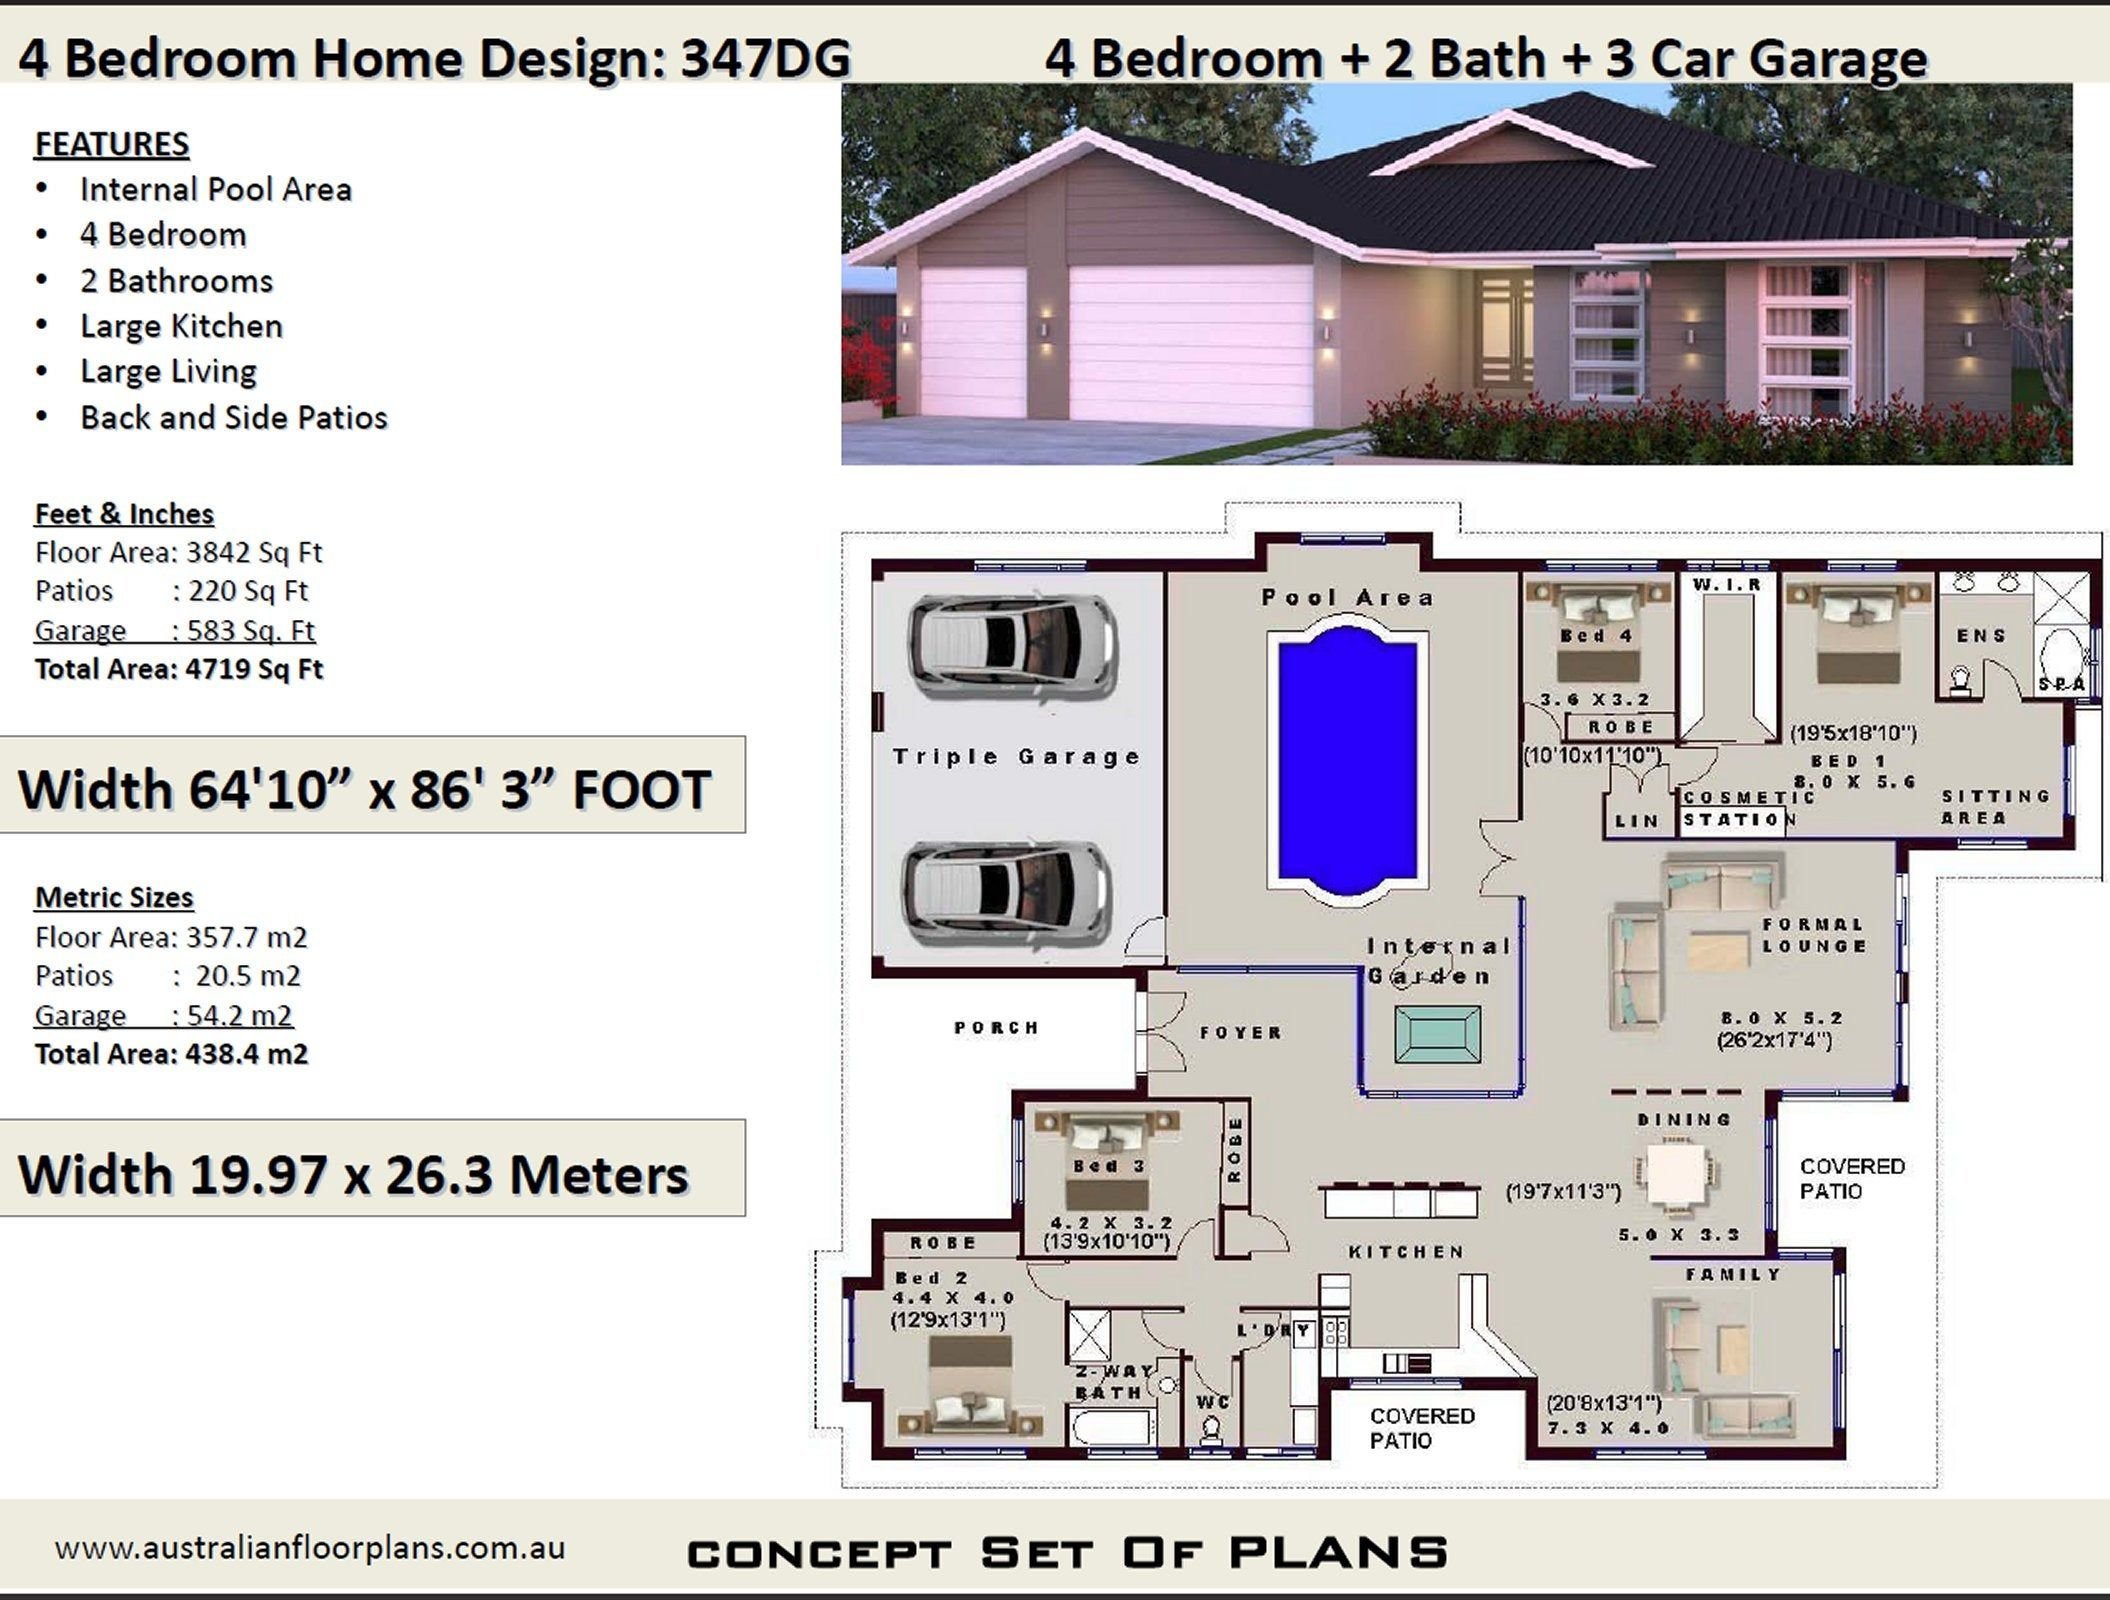 4 Bedroom House Plans Full Concept Plans For Sale Etsy House Plans Australia Modern House Plans House Plans For Sale